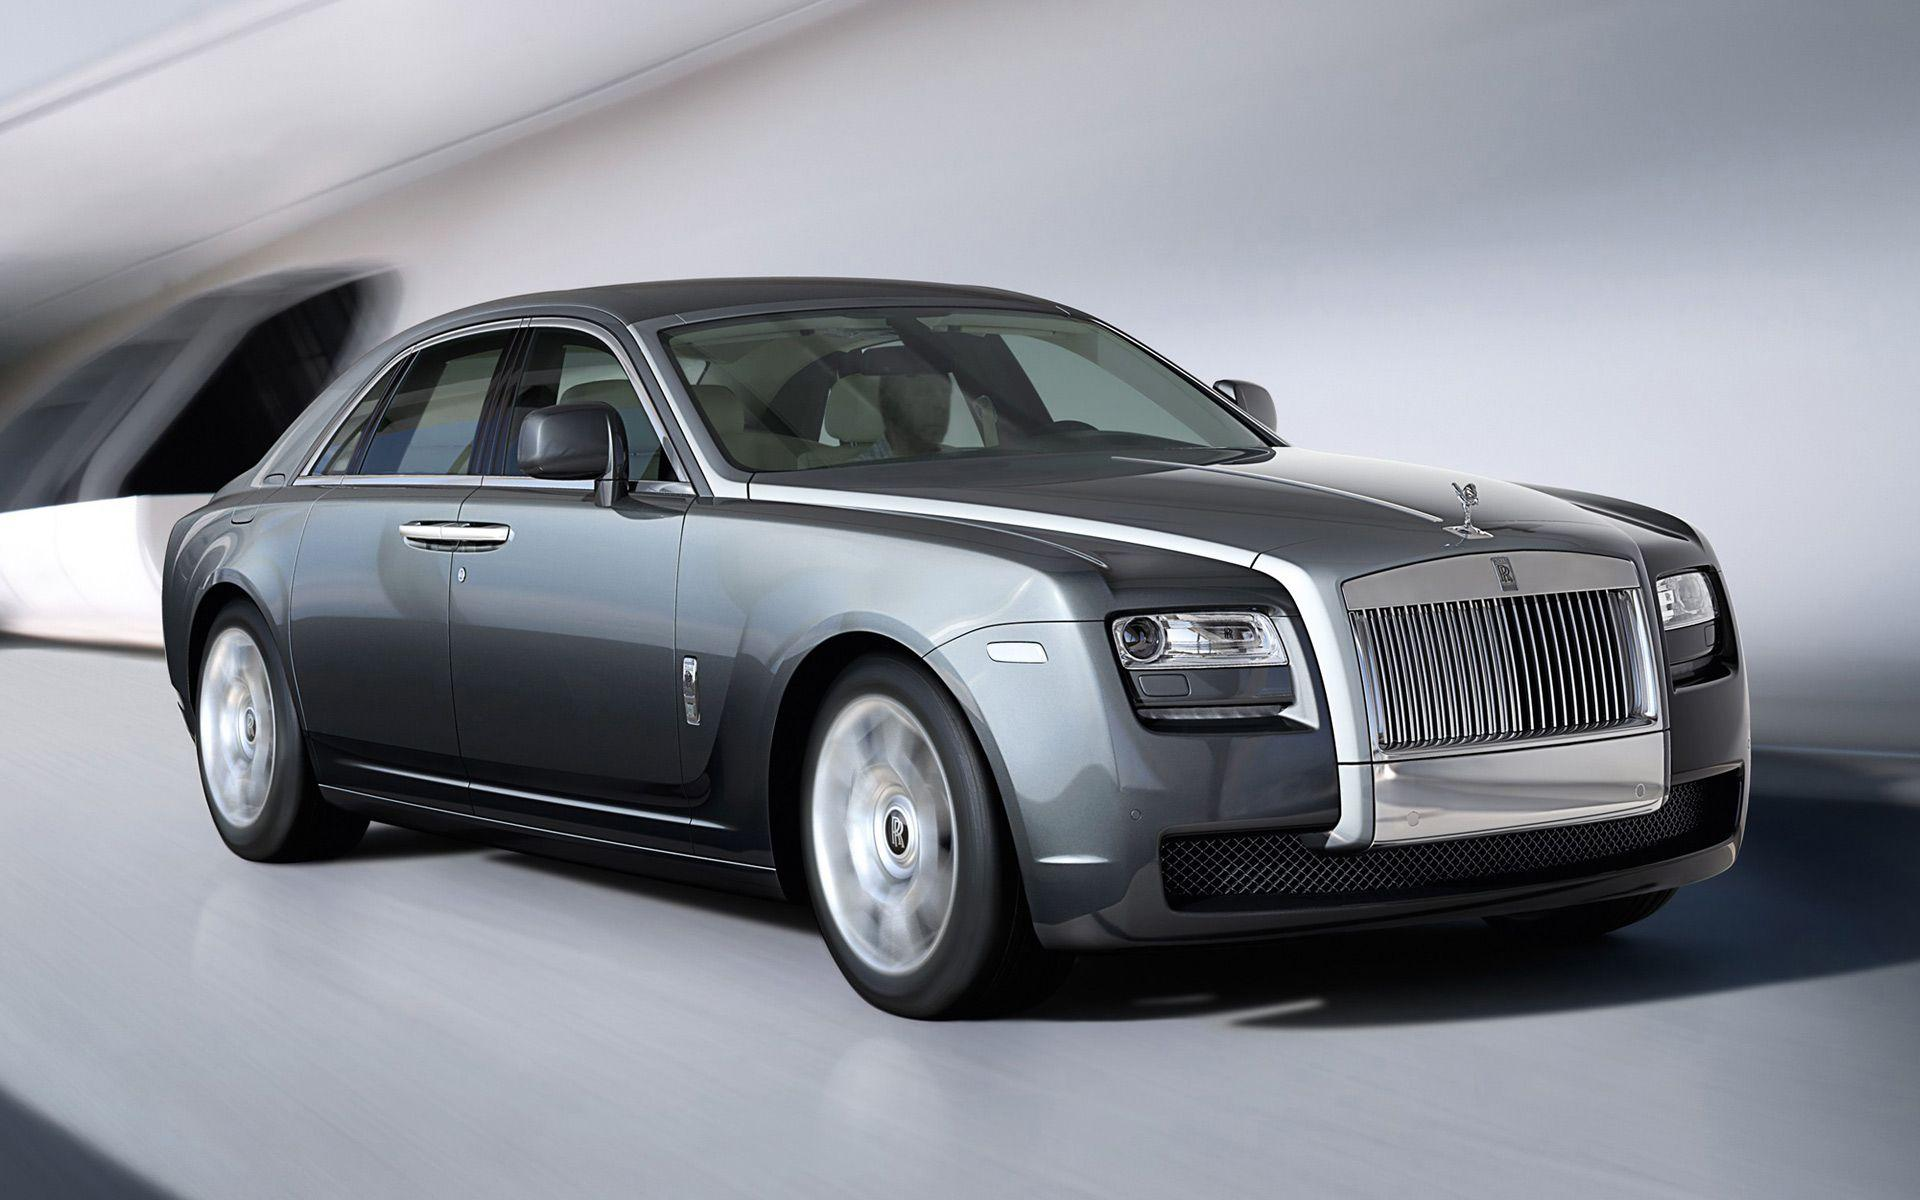 Rolls Royce Ghost Wallpaper High Quality #556 Wallpaper | WallDiskPaper